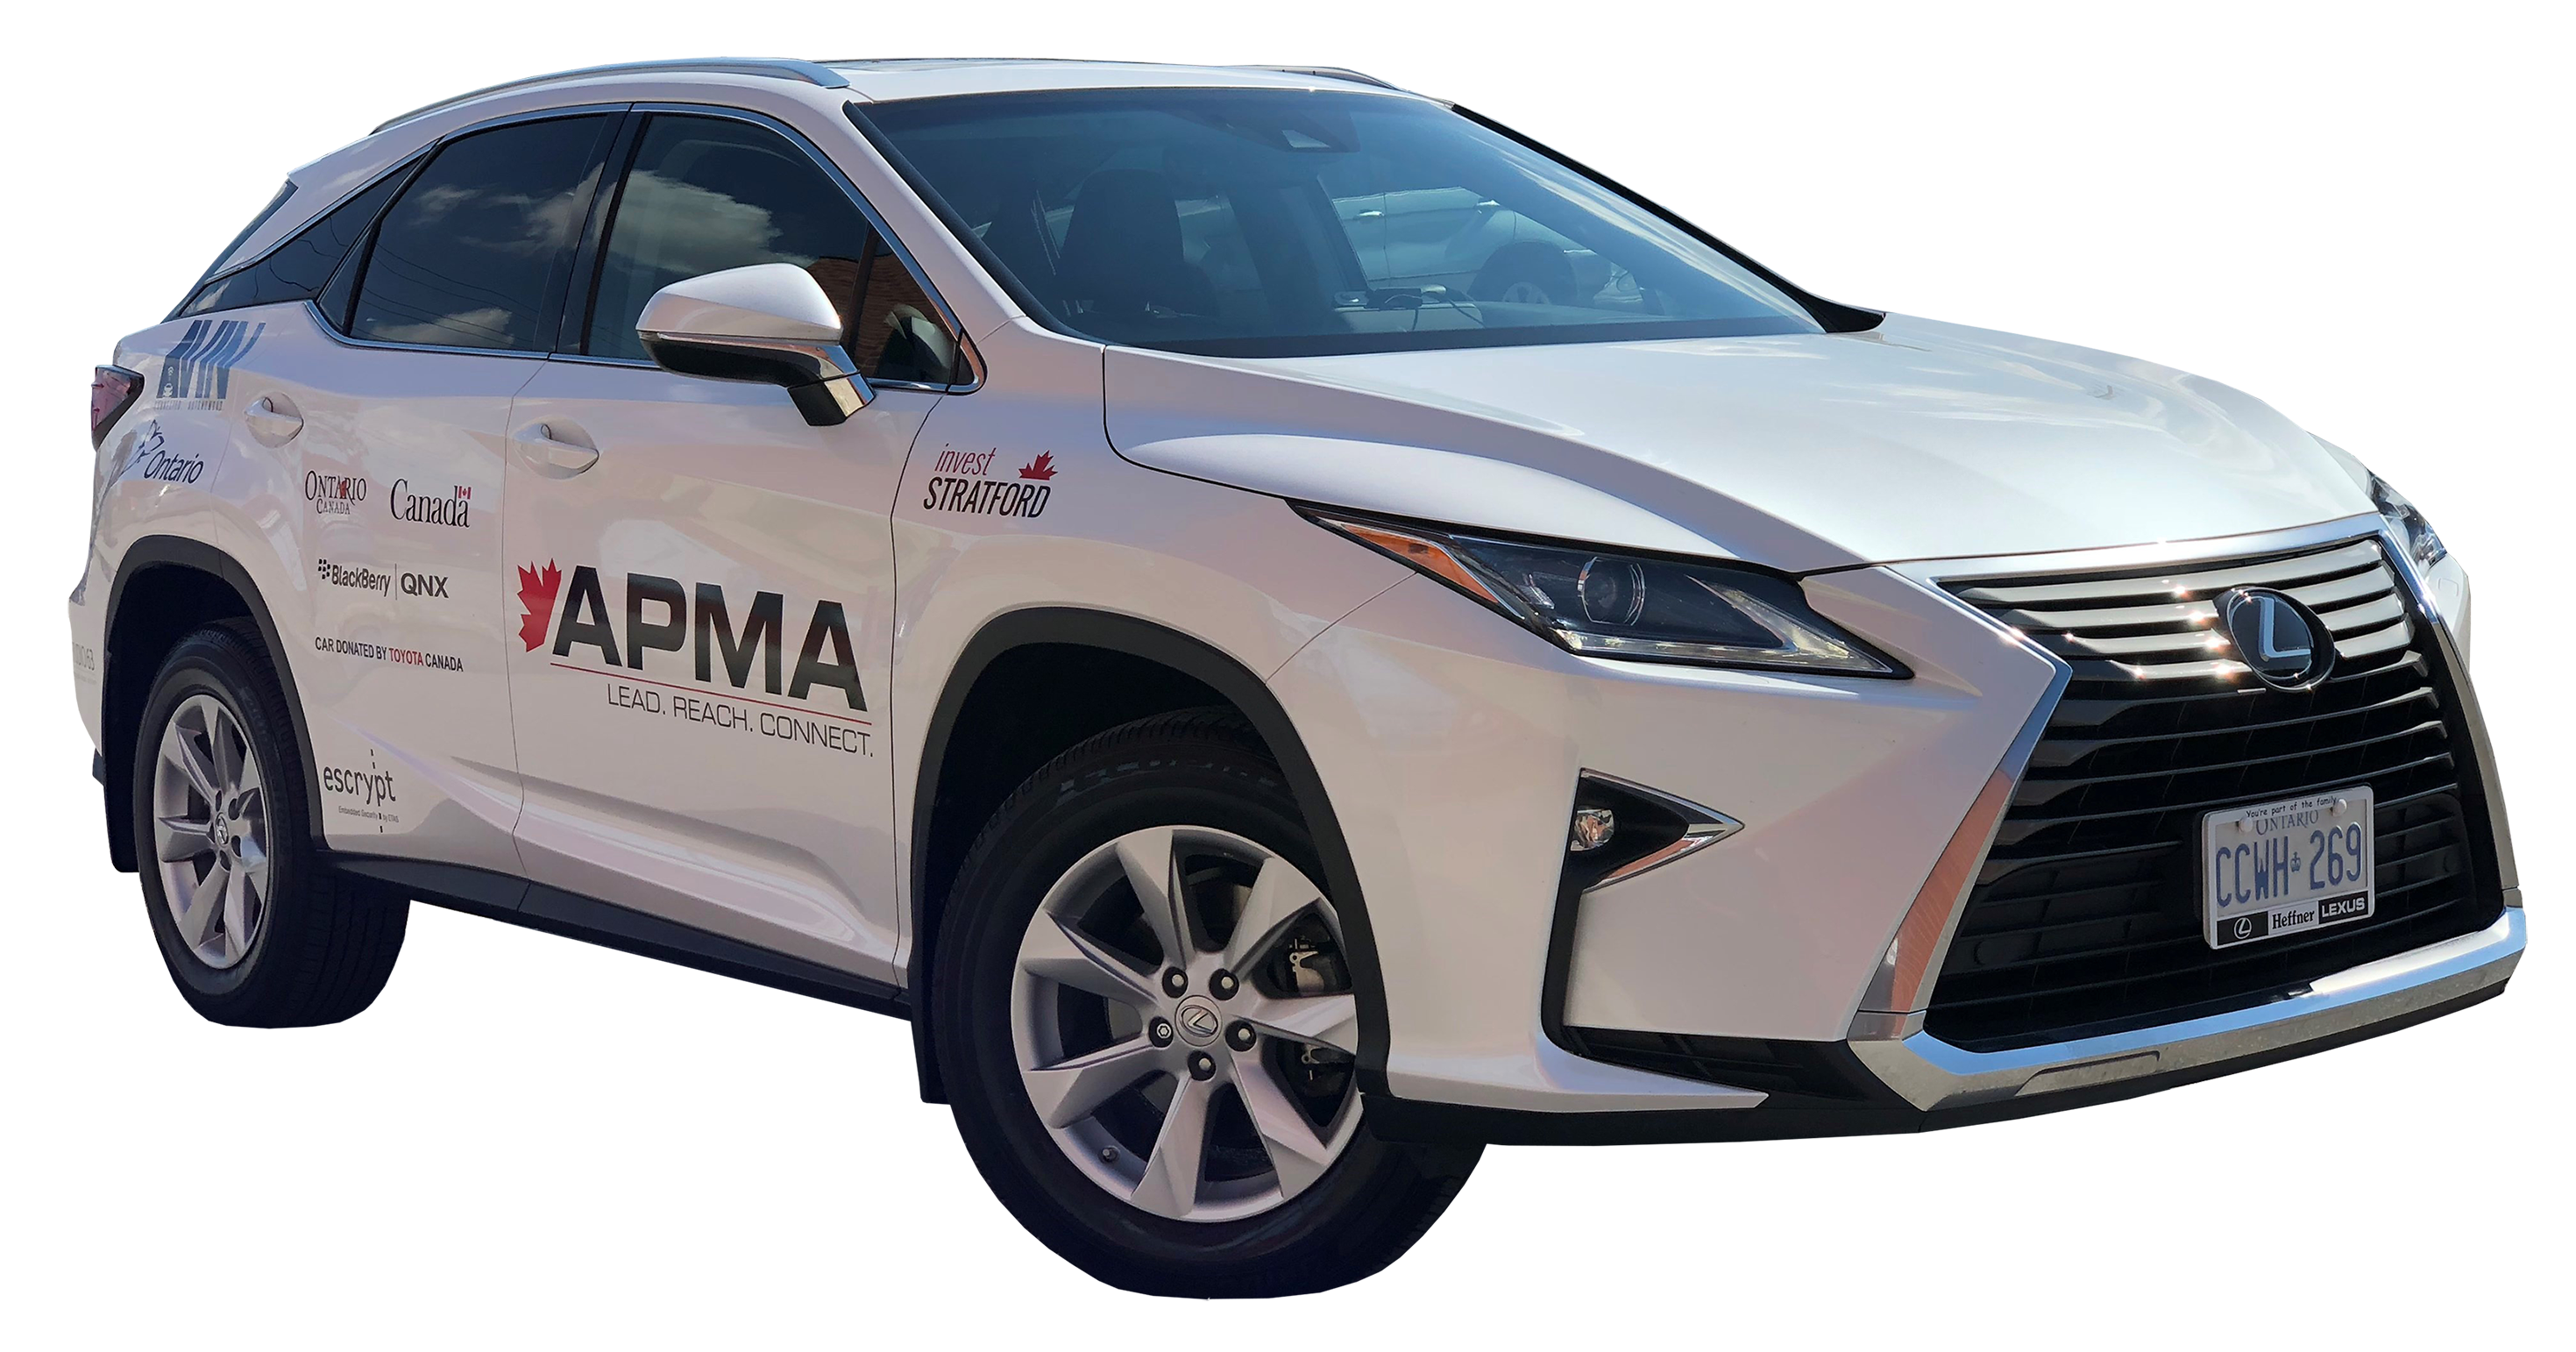 APMA Autonomous Vehicle